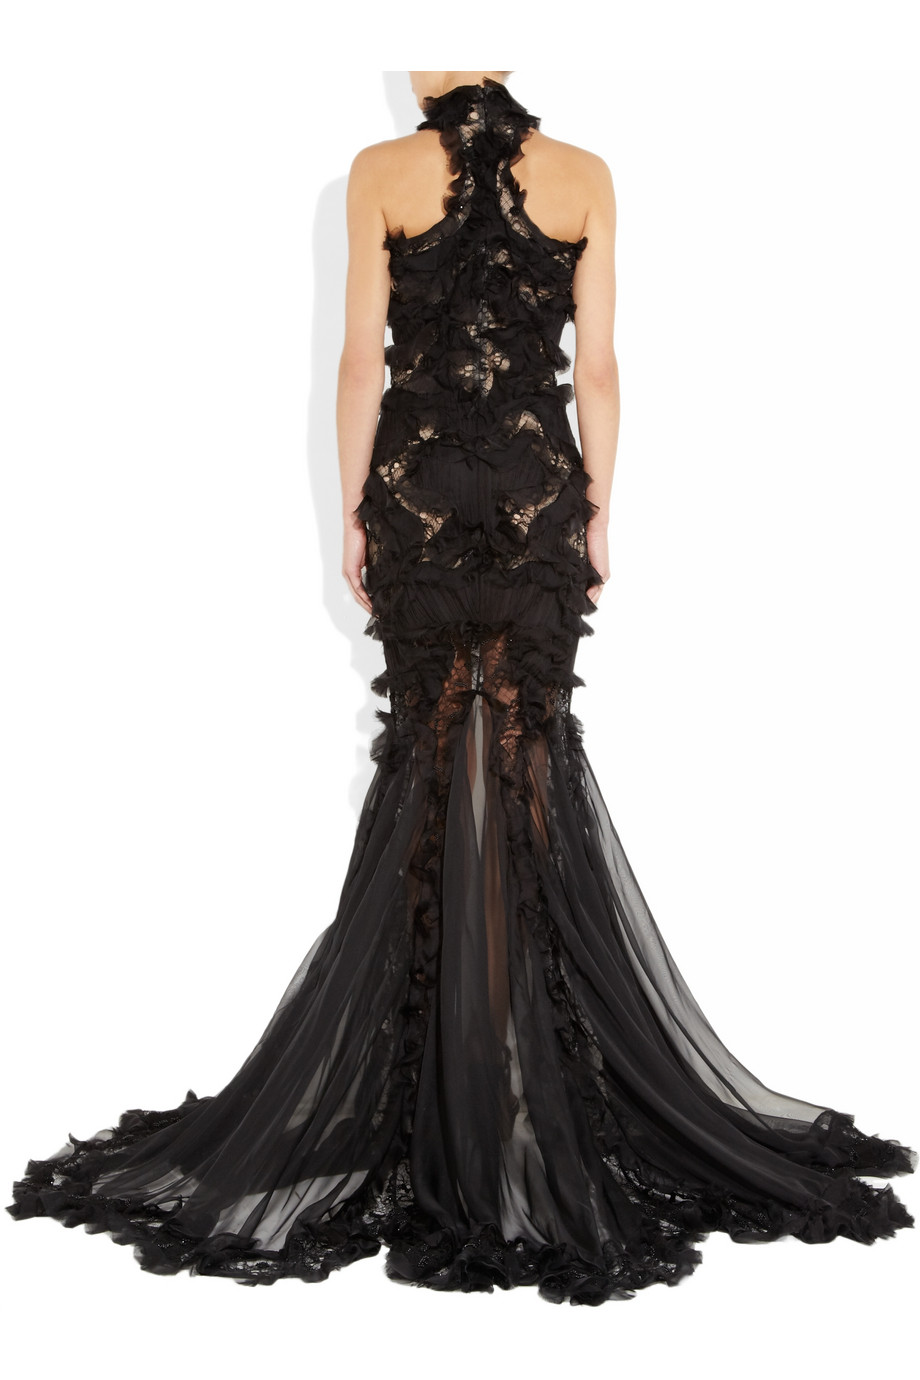 Alexander McQueen Dress for £12,415! - Cars & Life | Cars Fashion ...